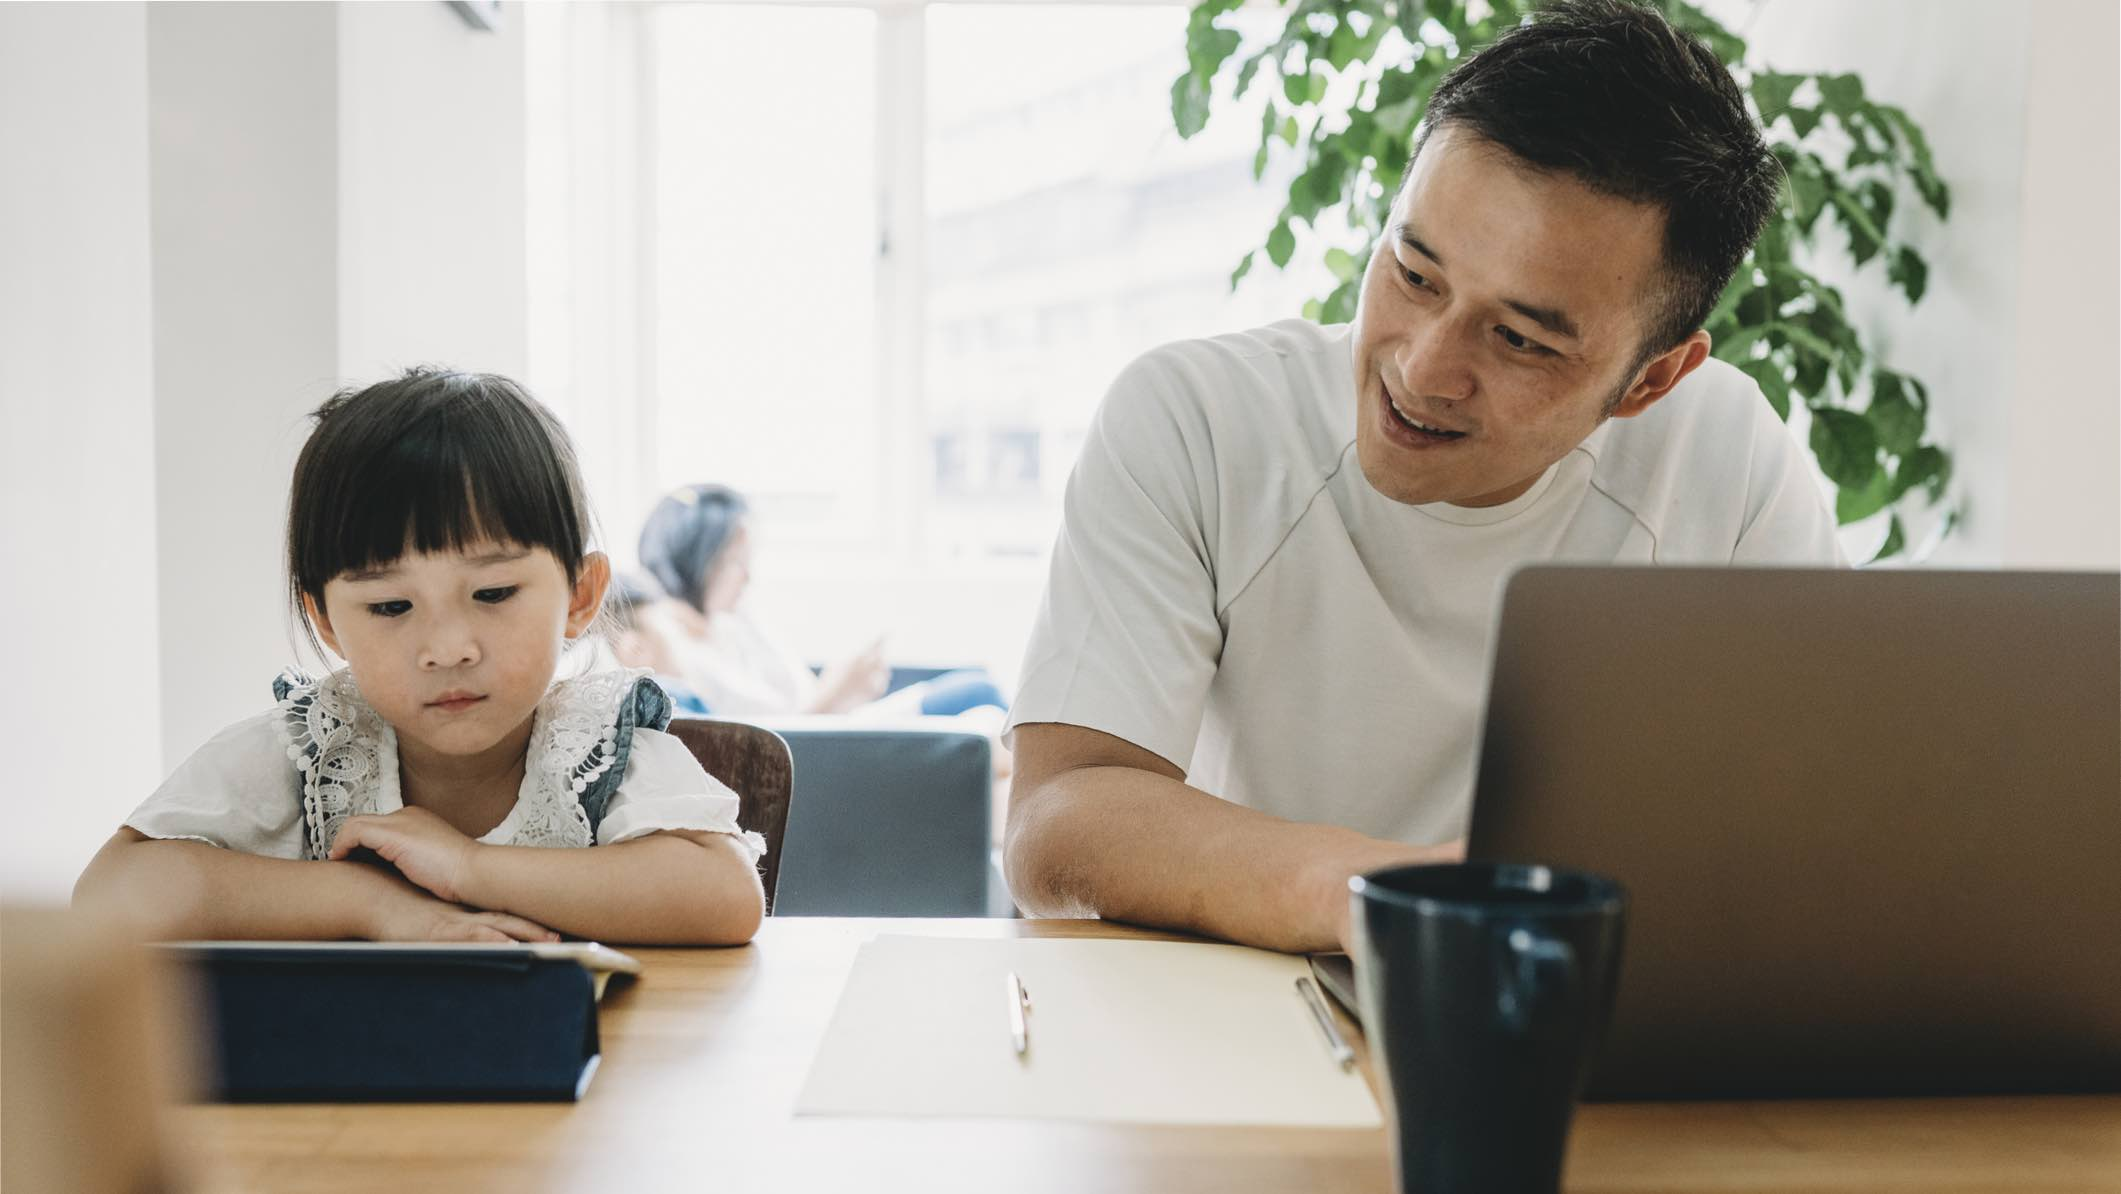 Parent and child looking at computers, considering life insurance.